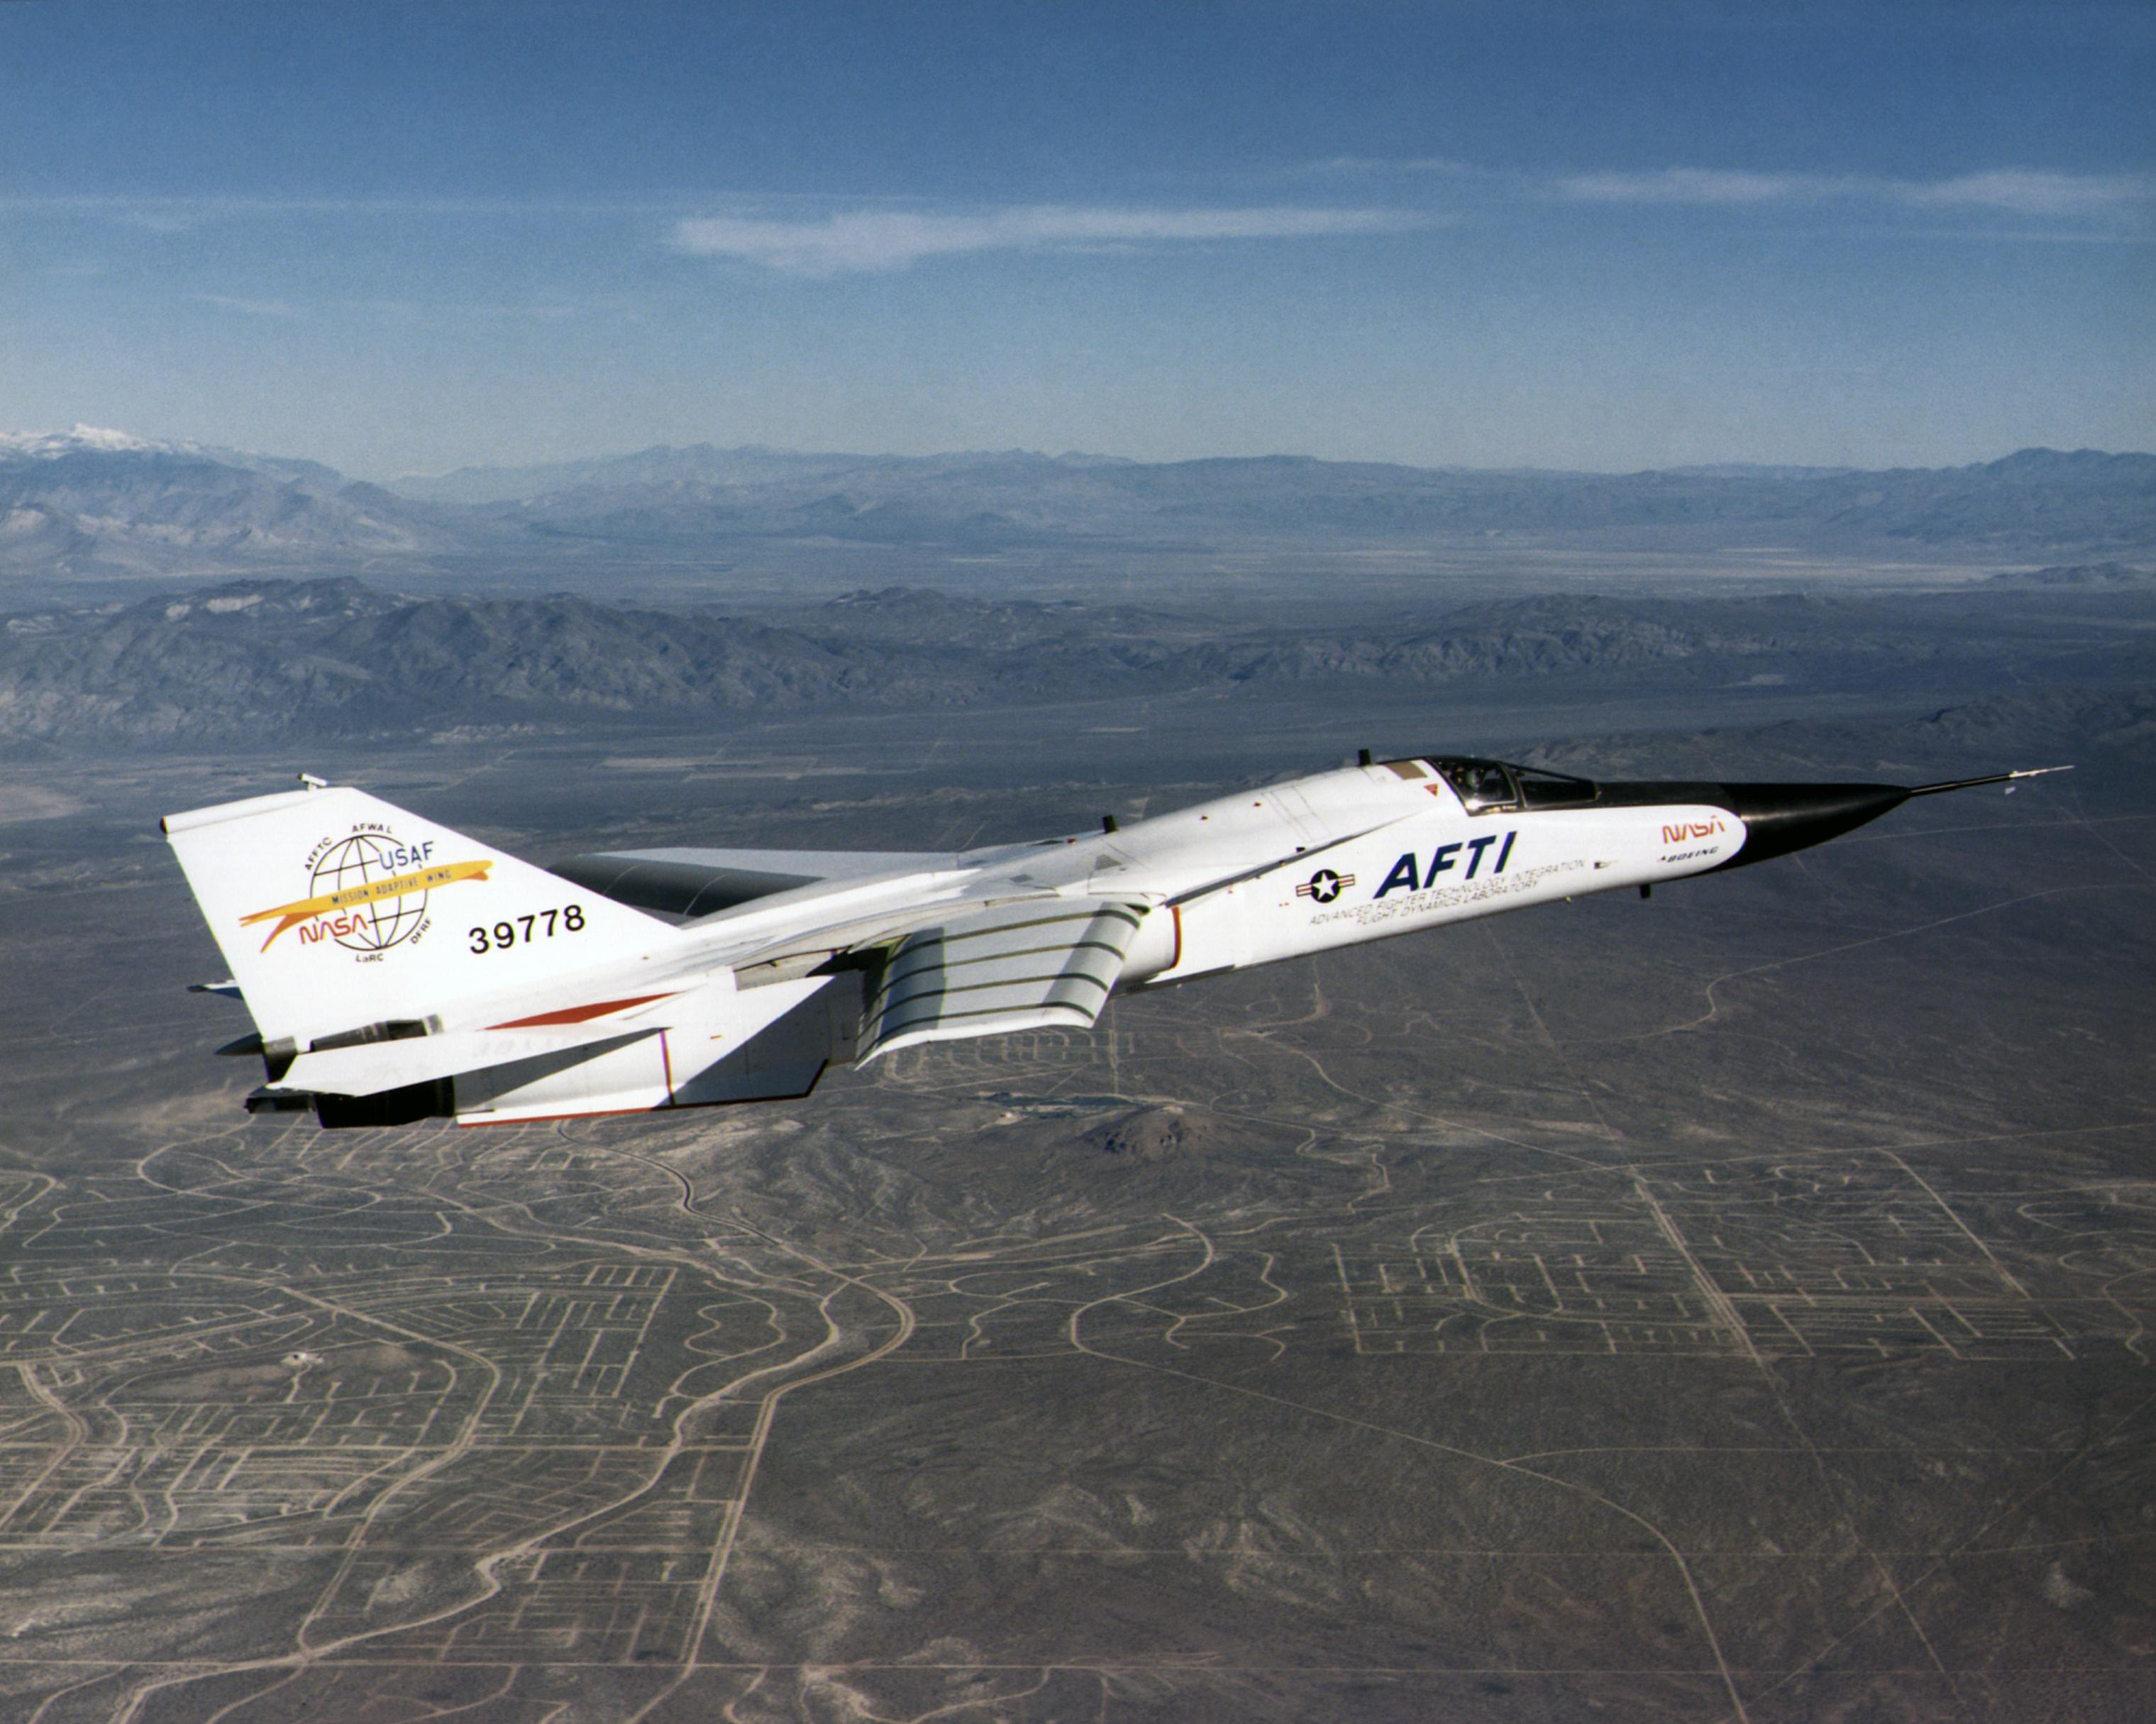 1967 nasa aircraft - photo #19